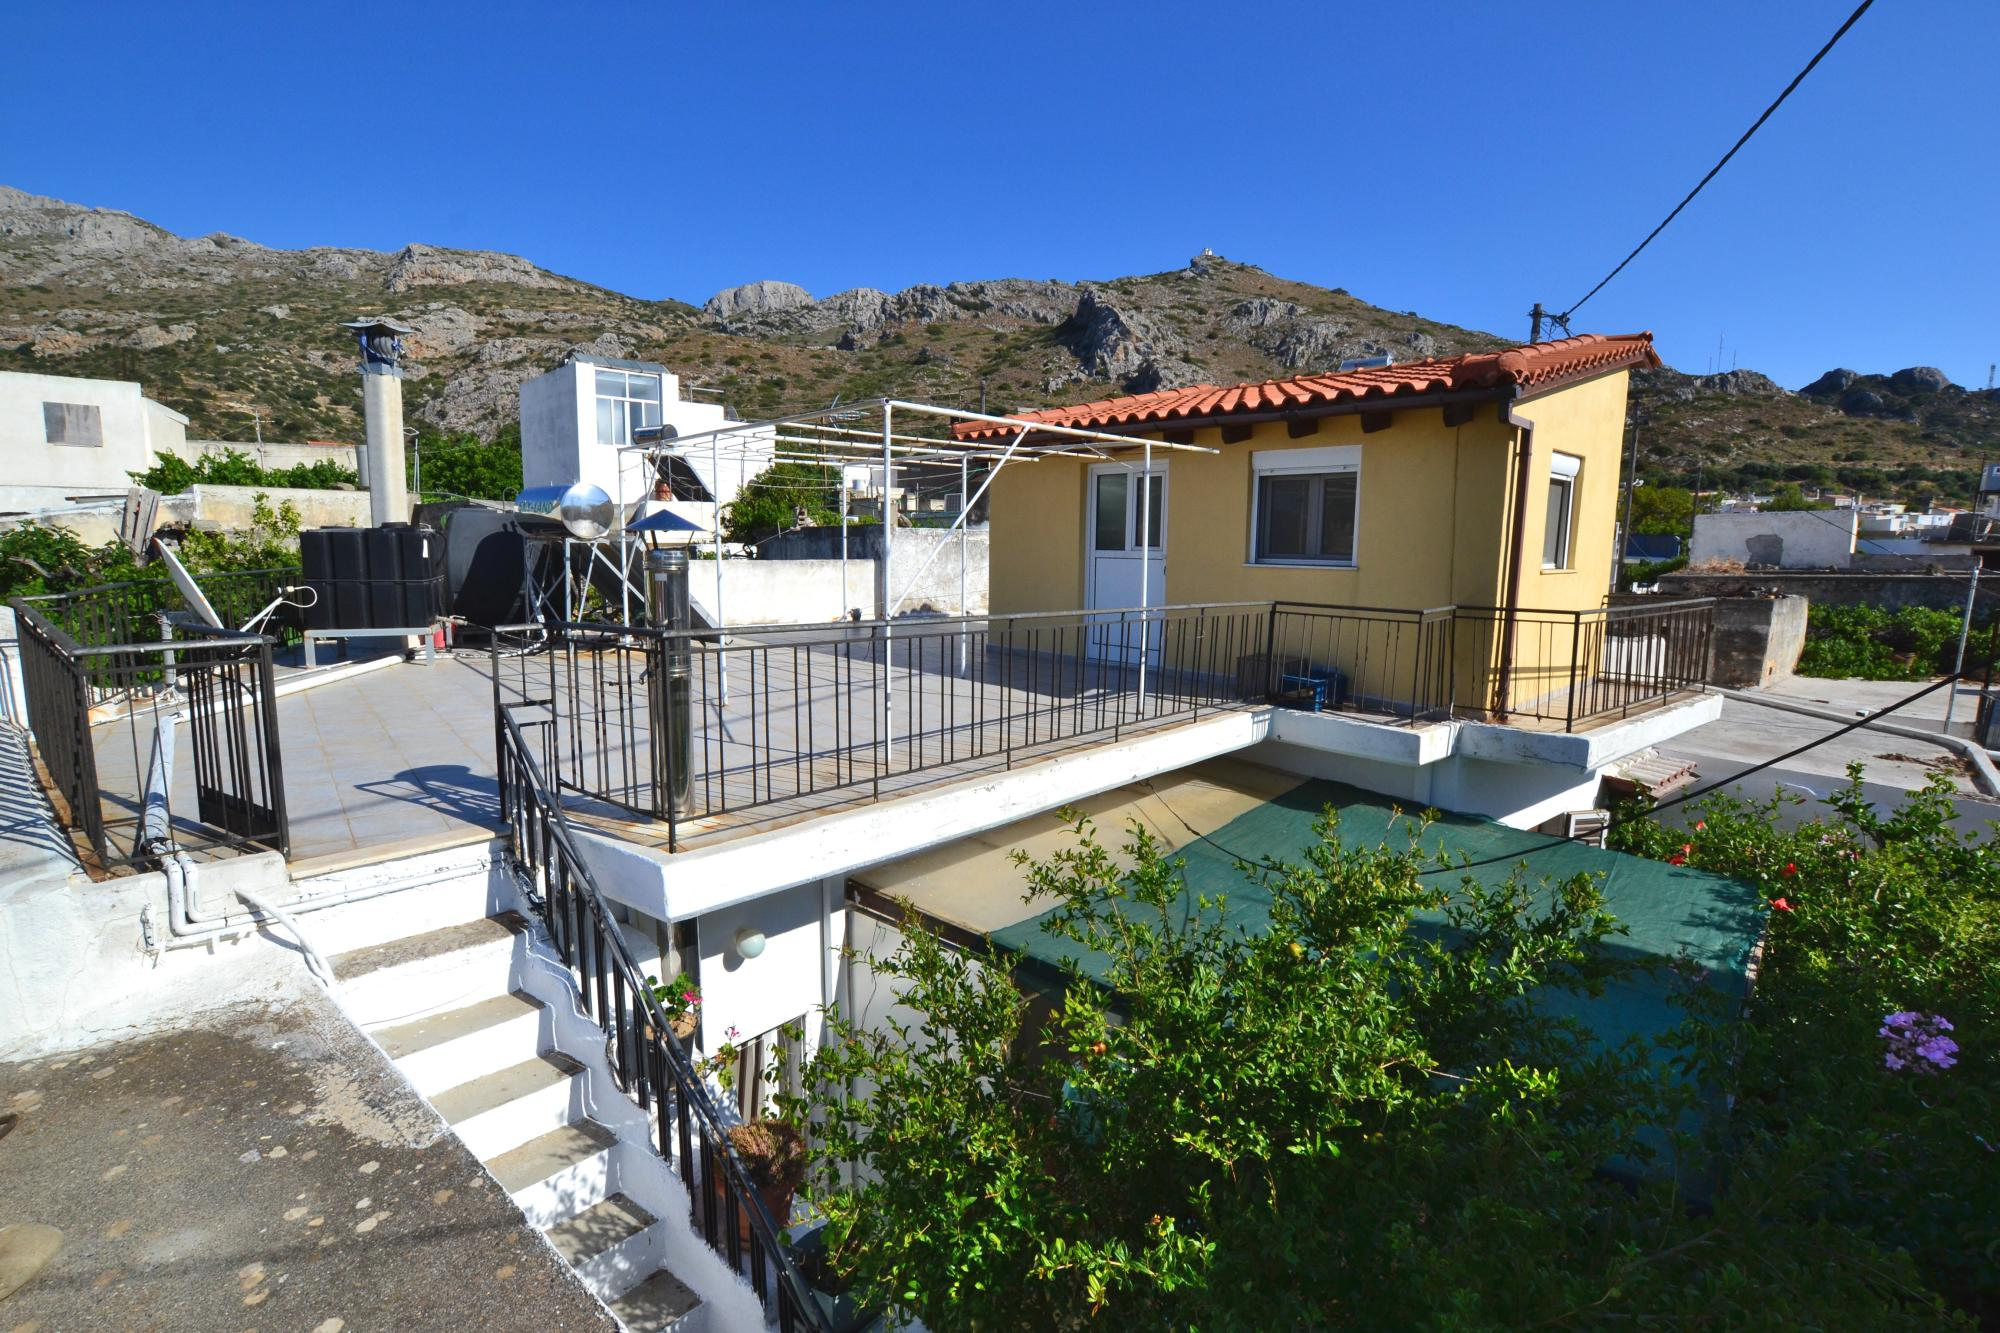 3 Bedroom village house with yard and roof terrace.